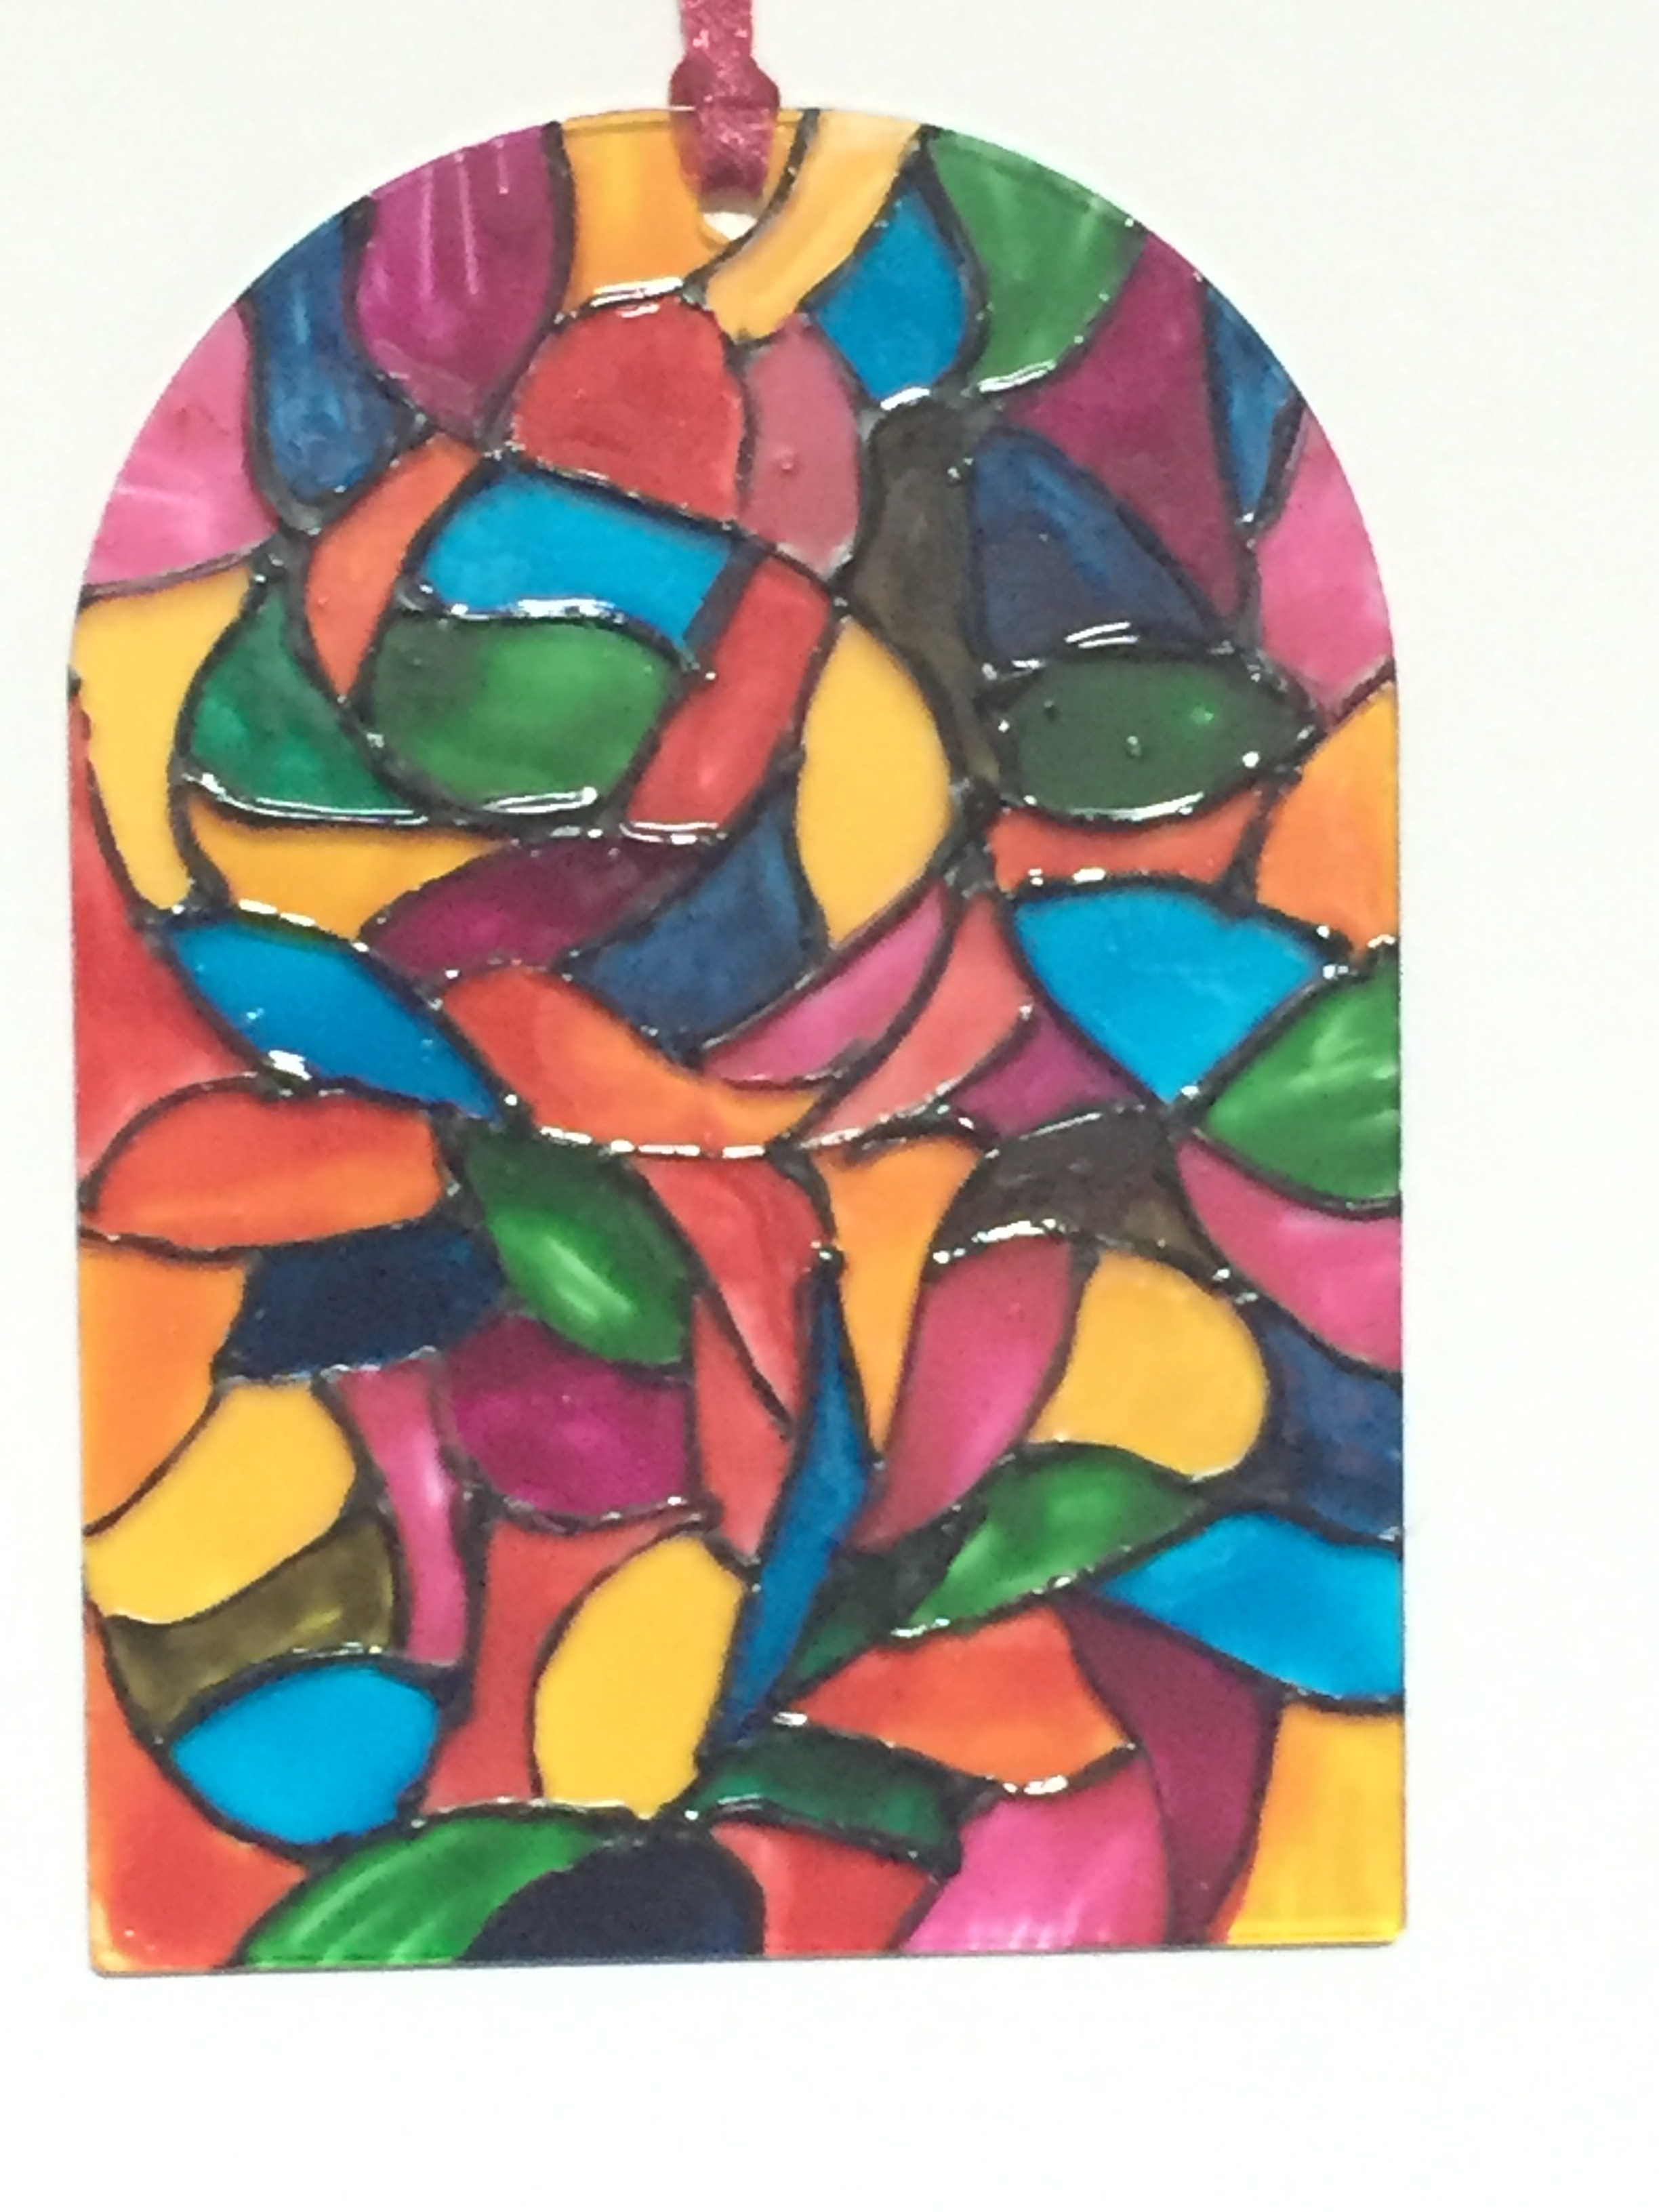 Multi-coloured stained glass